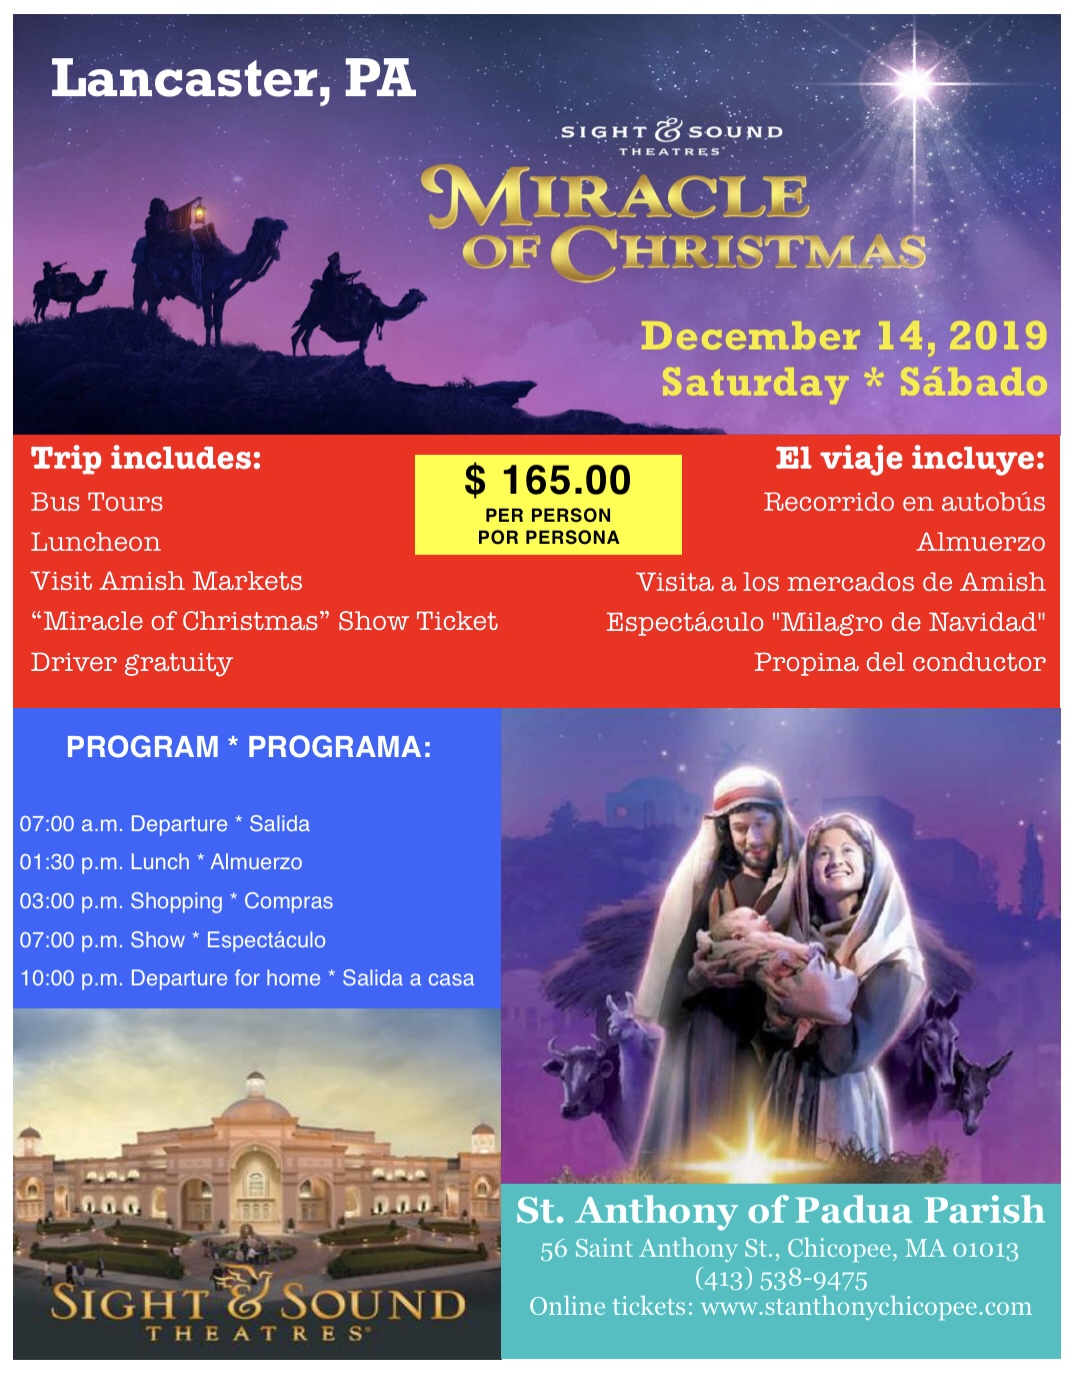 Sight And Sound Miracle Of Christmas.Miracle Of Christmas Lancaster Pa St Anthony Of Padua Parish